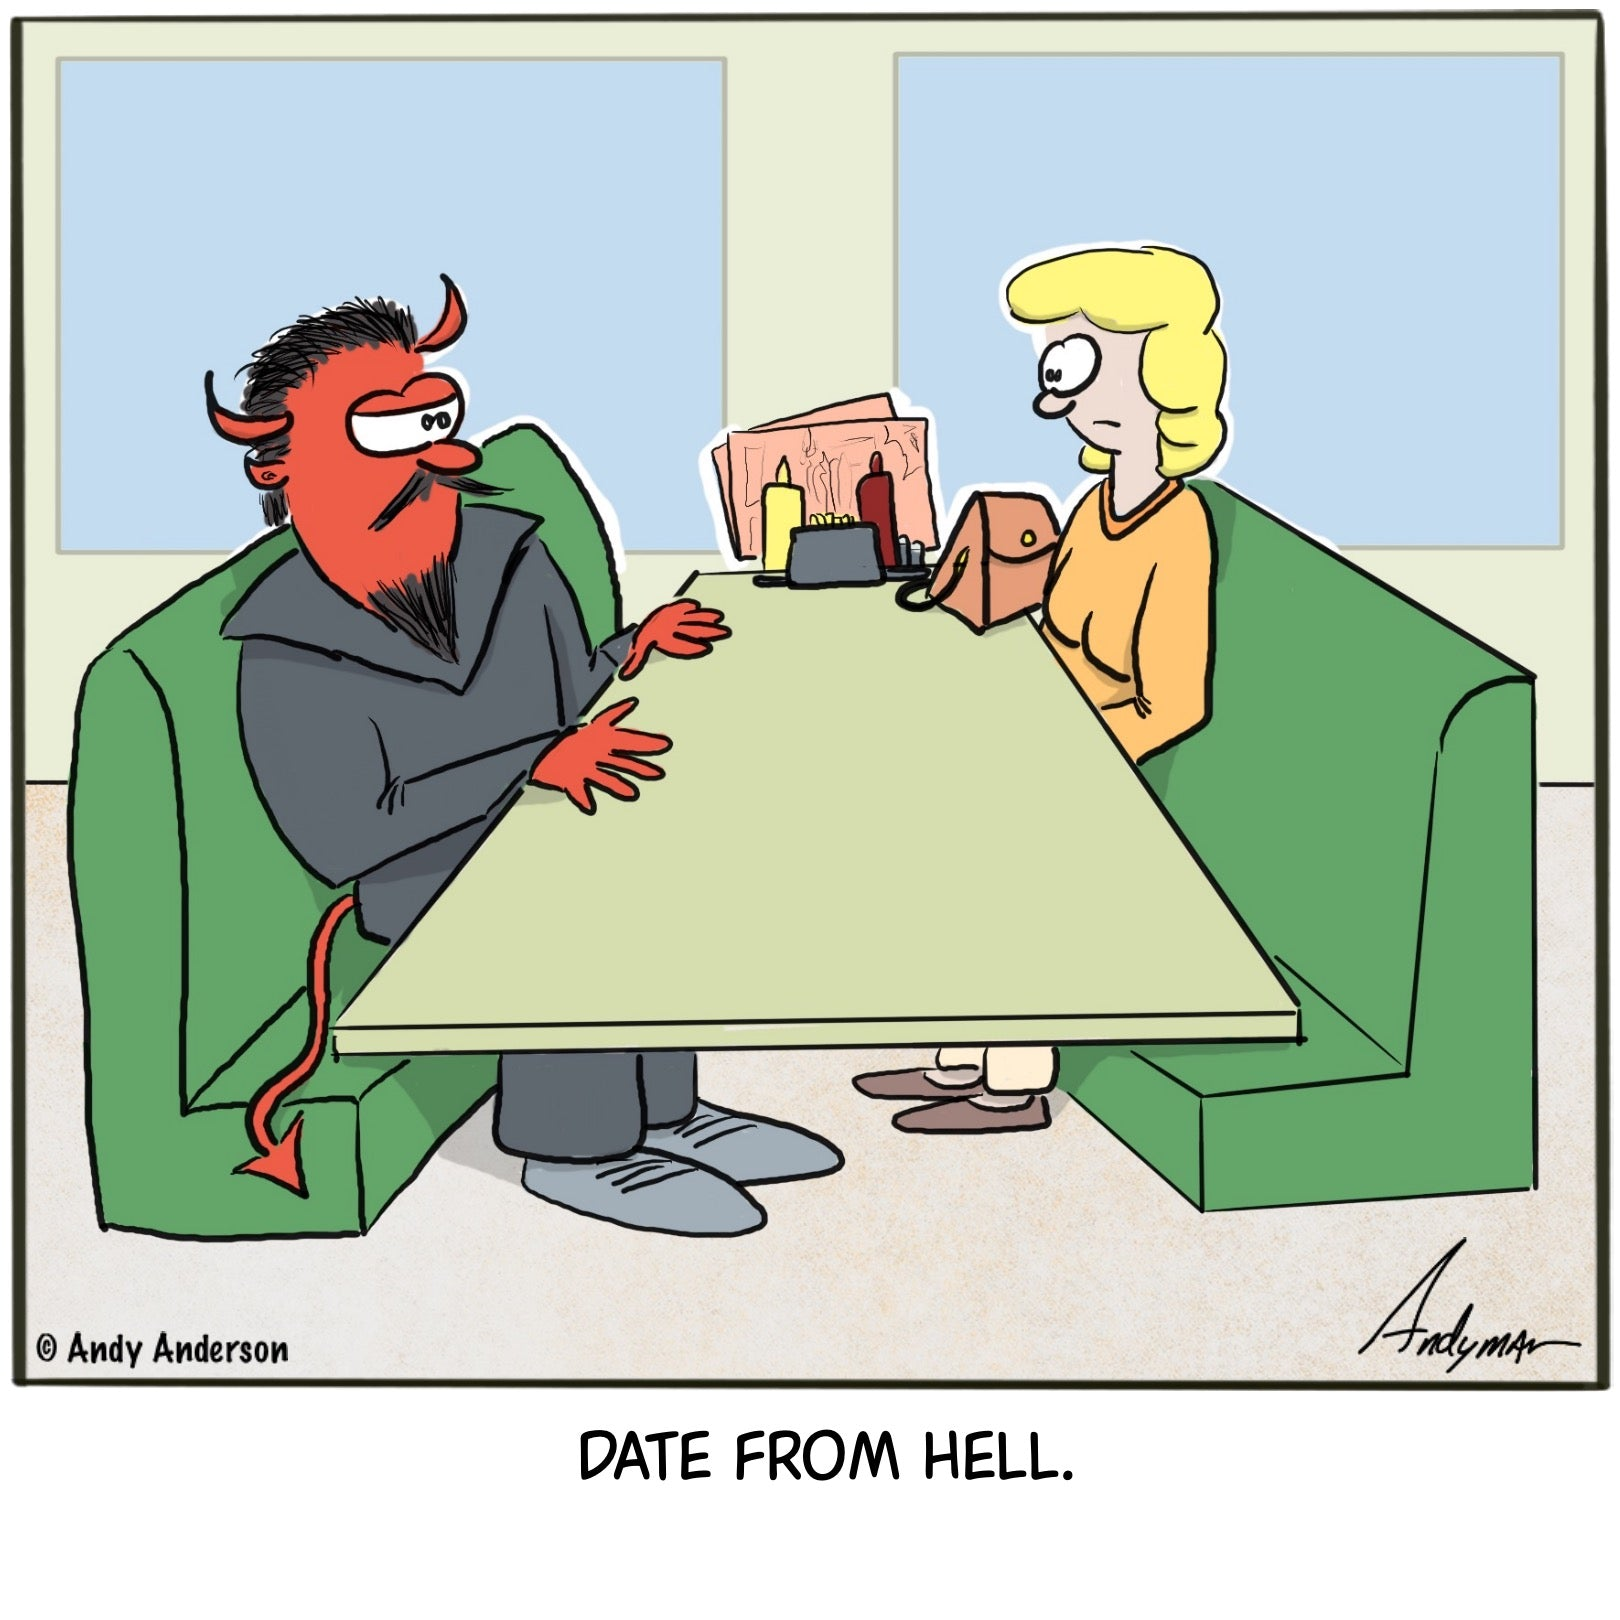 Cartoon about a woman on a date from Hell and the Devil is her date